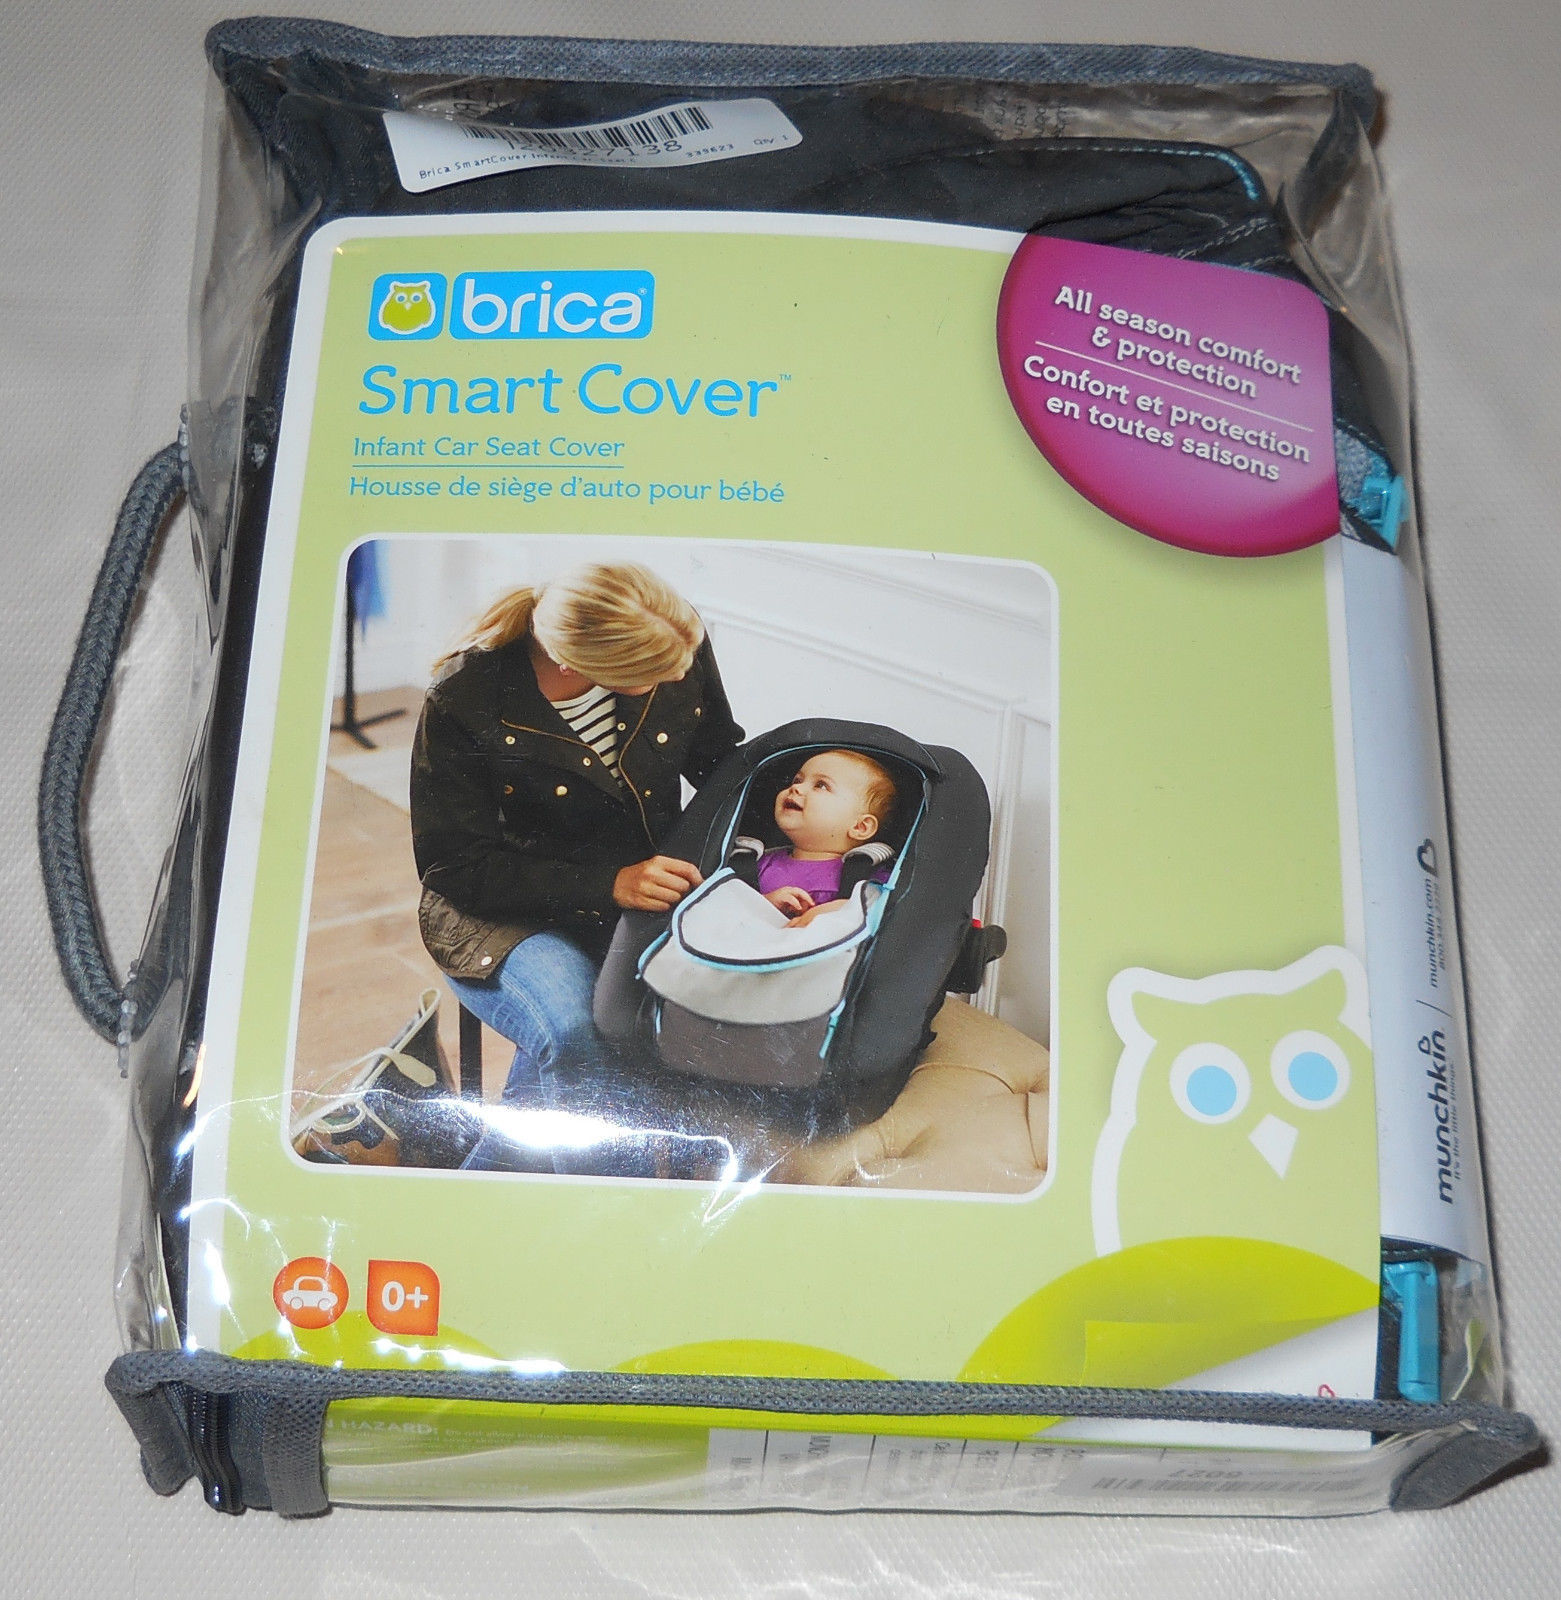 Brica SmartCover Infant Car Seat Cover NEW